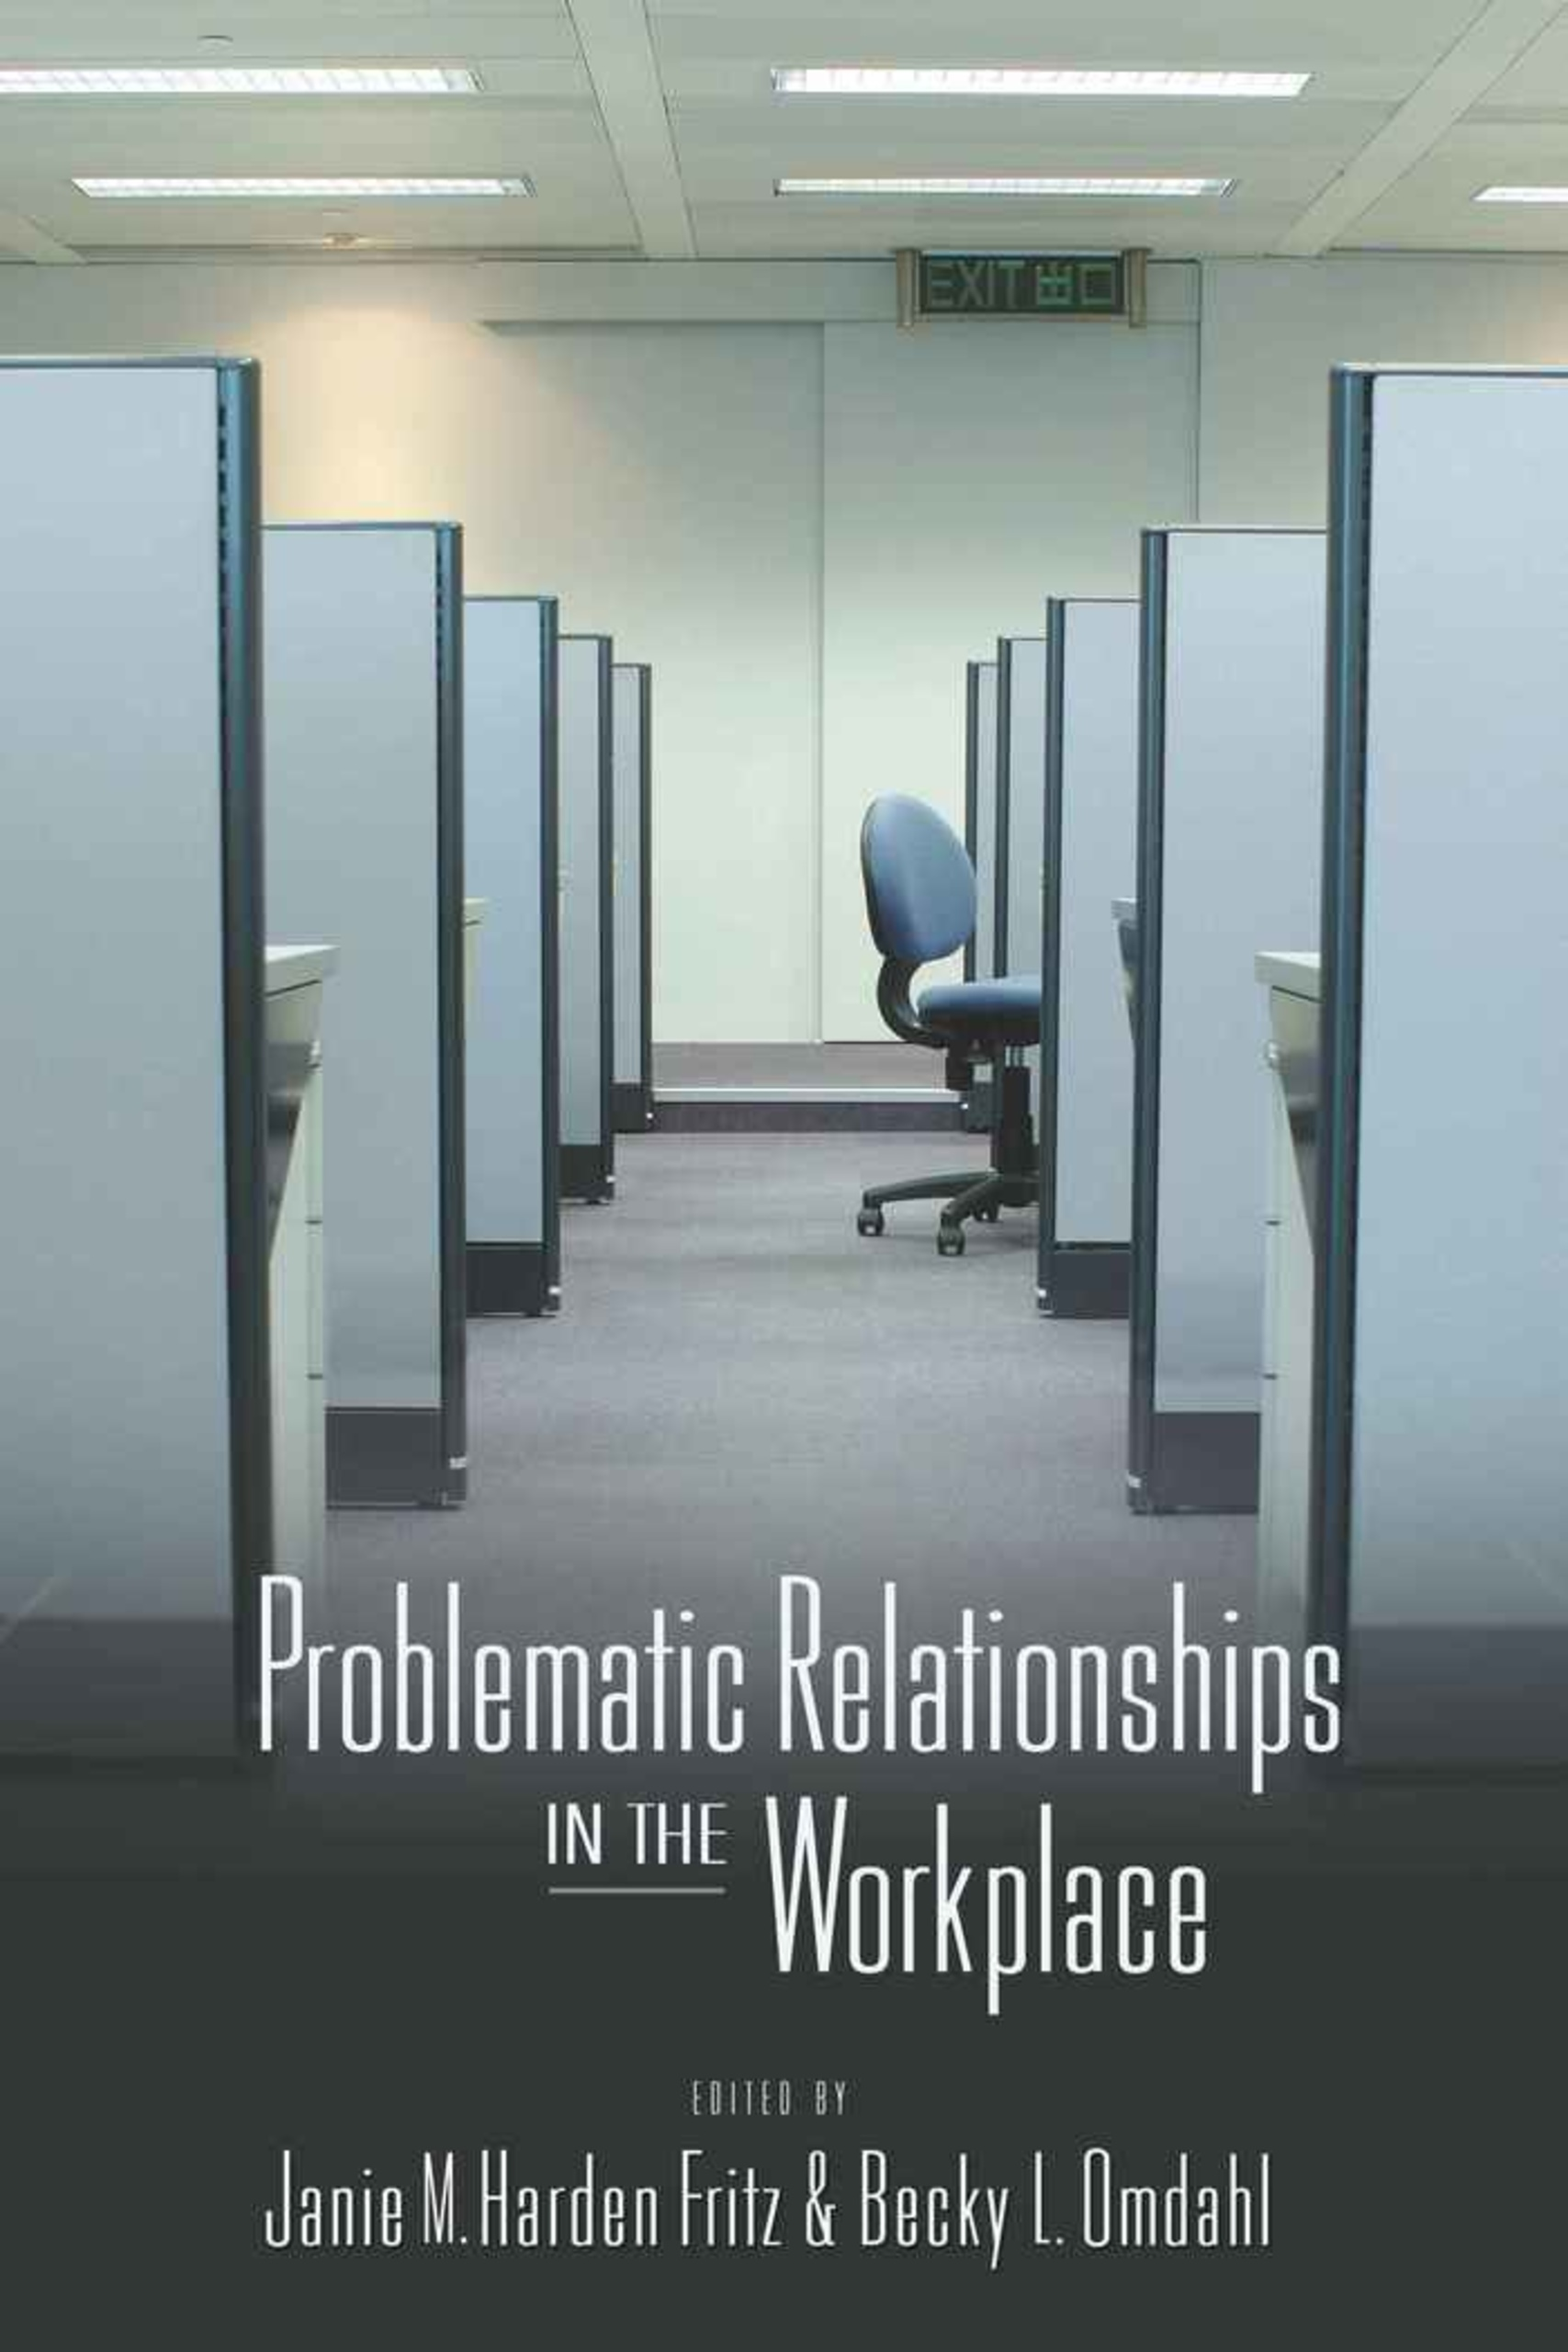 Title: Problematic Relationships in the Workplace